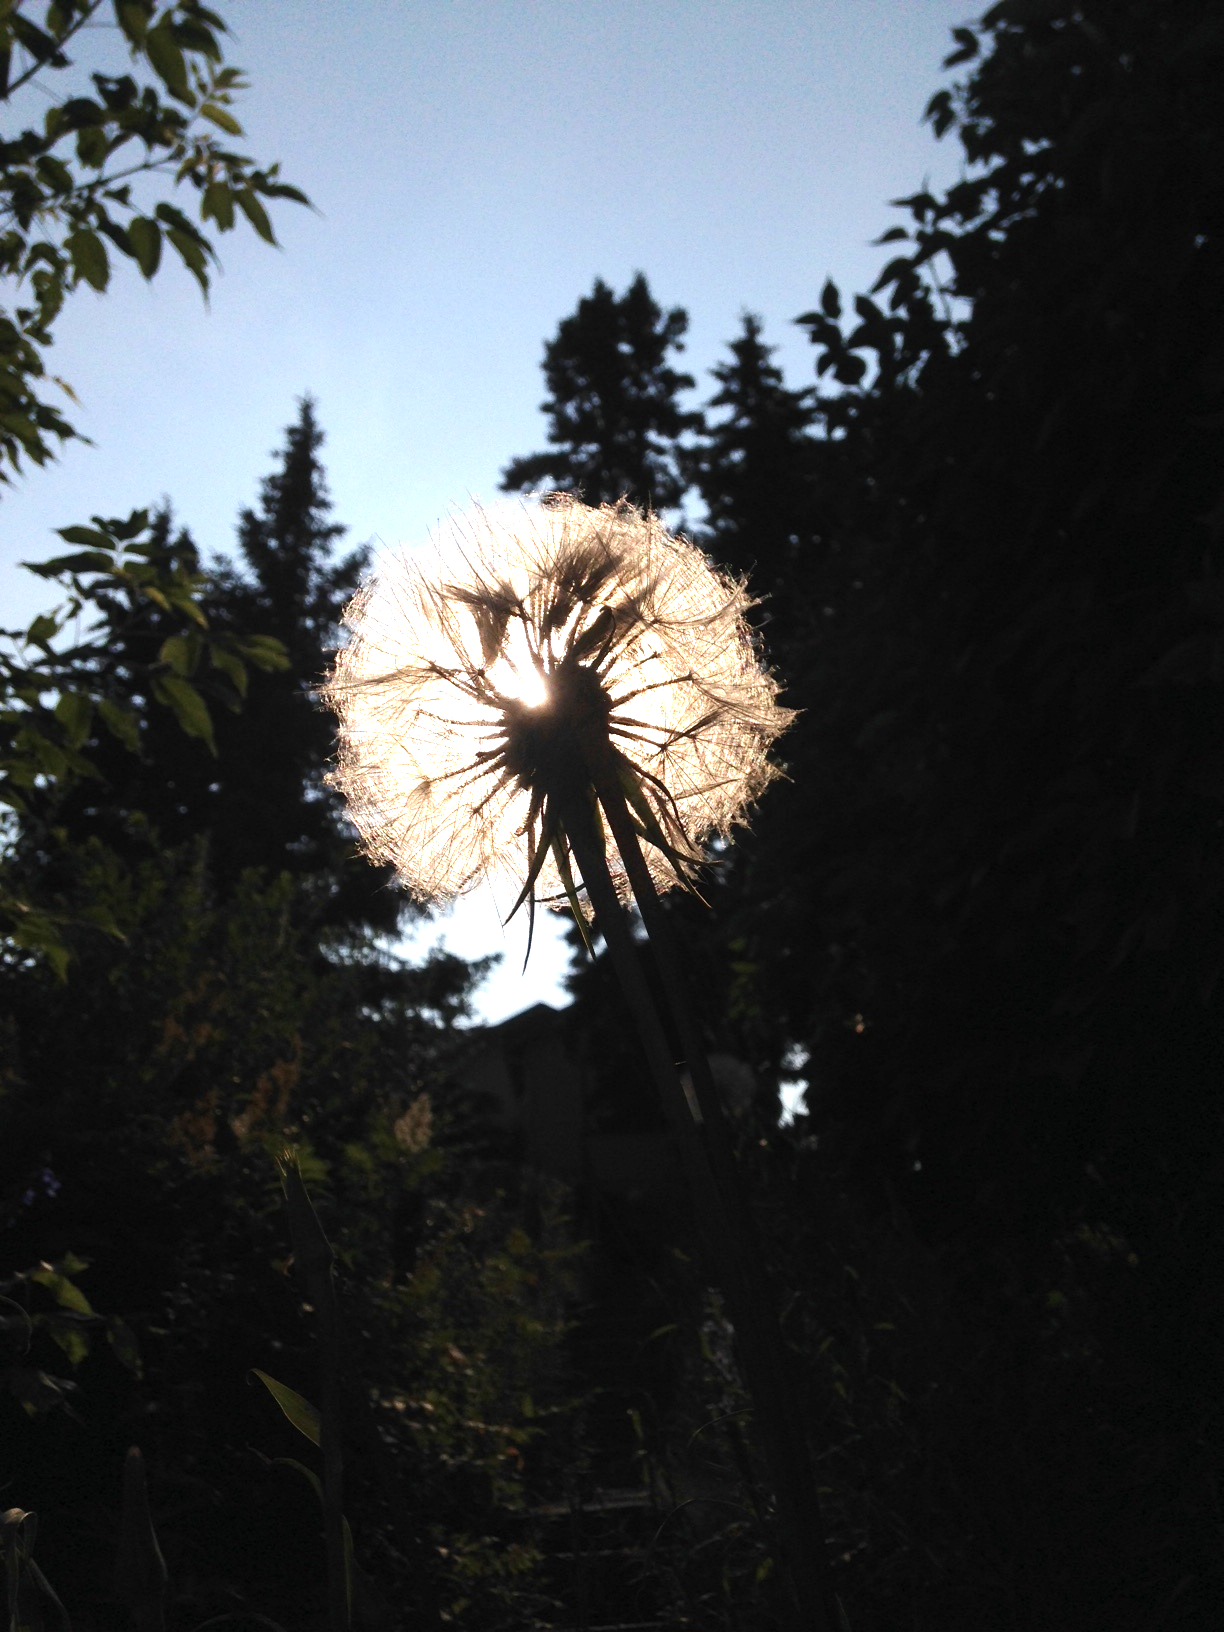 This sunset dandelion just appeared to me as we were walking along the streets of West Hillhurst, Calgary.